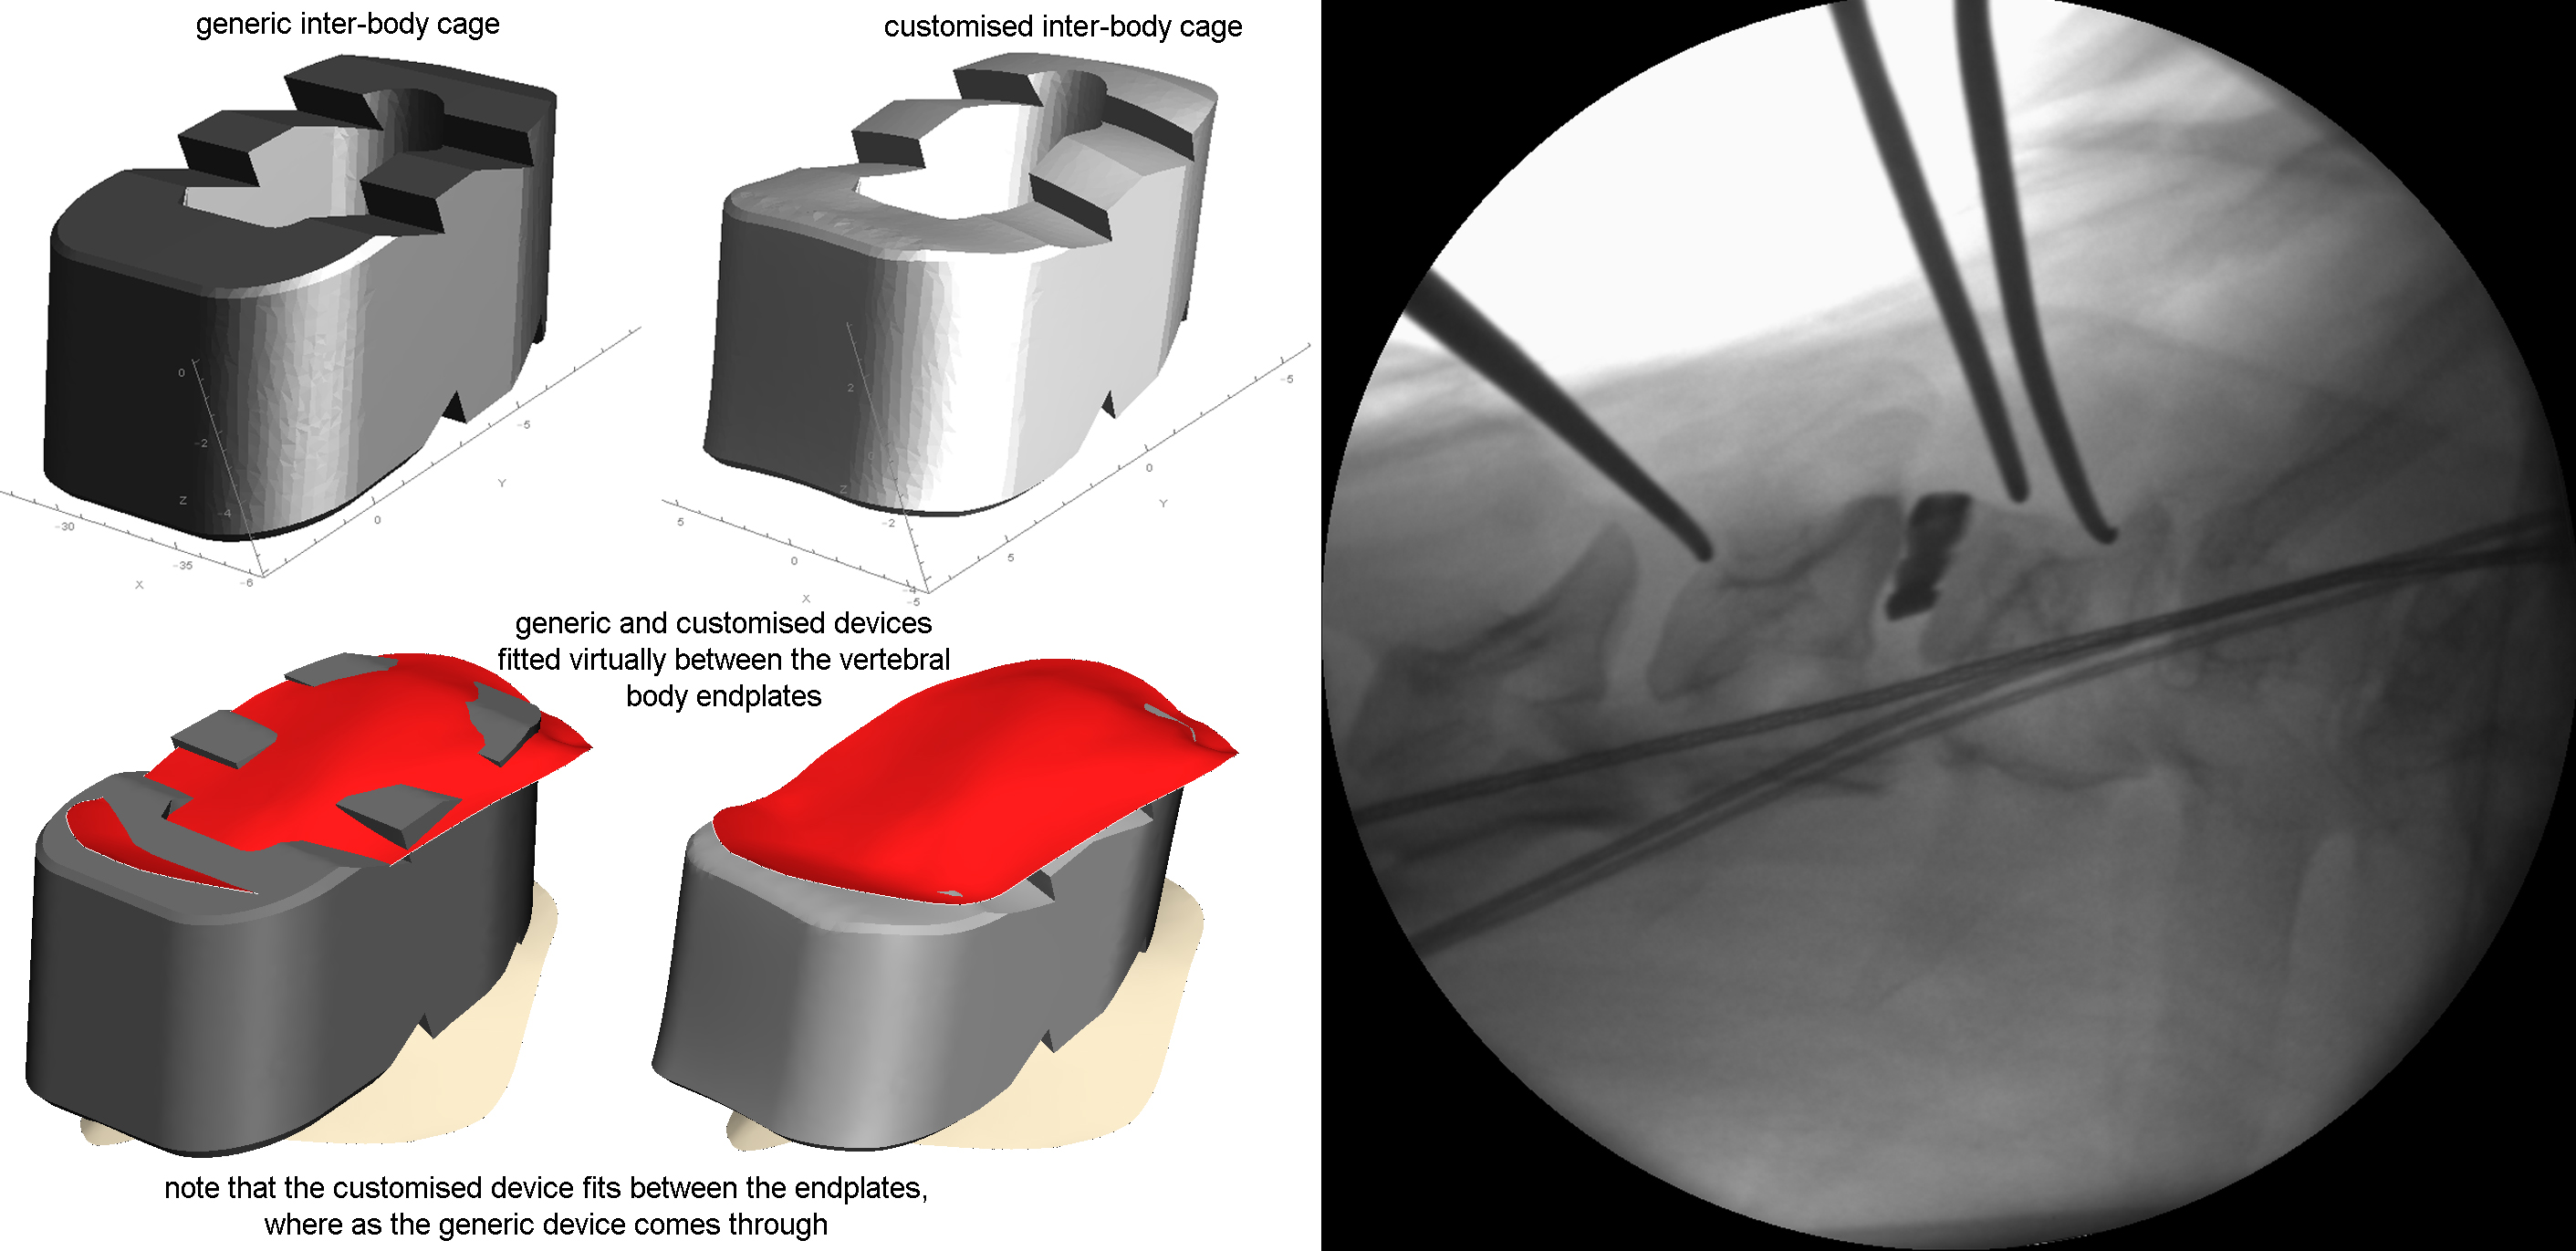 implants and devices copy